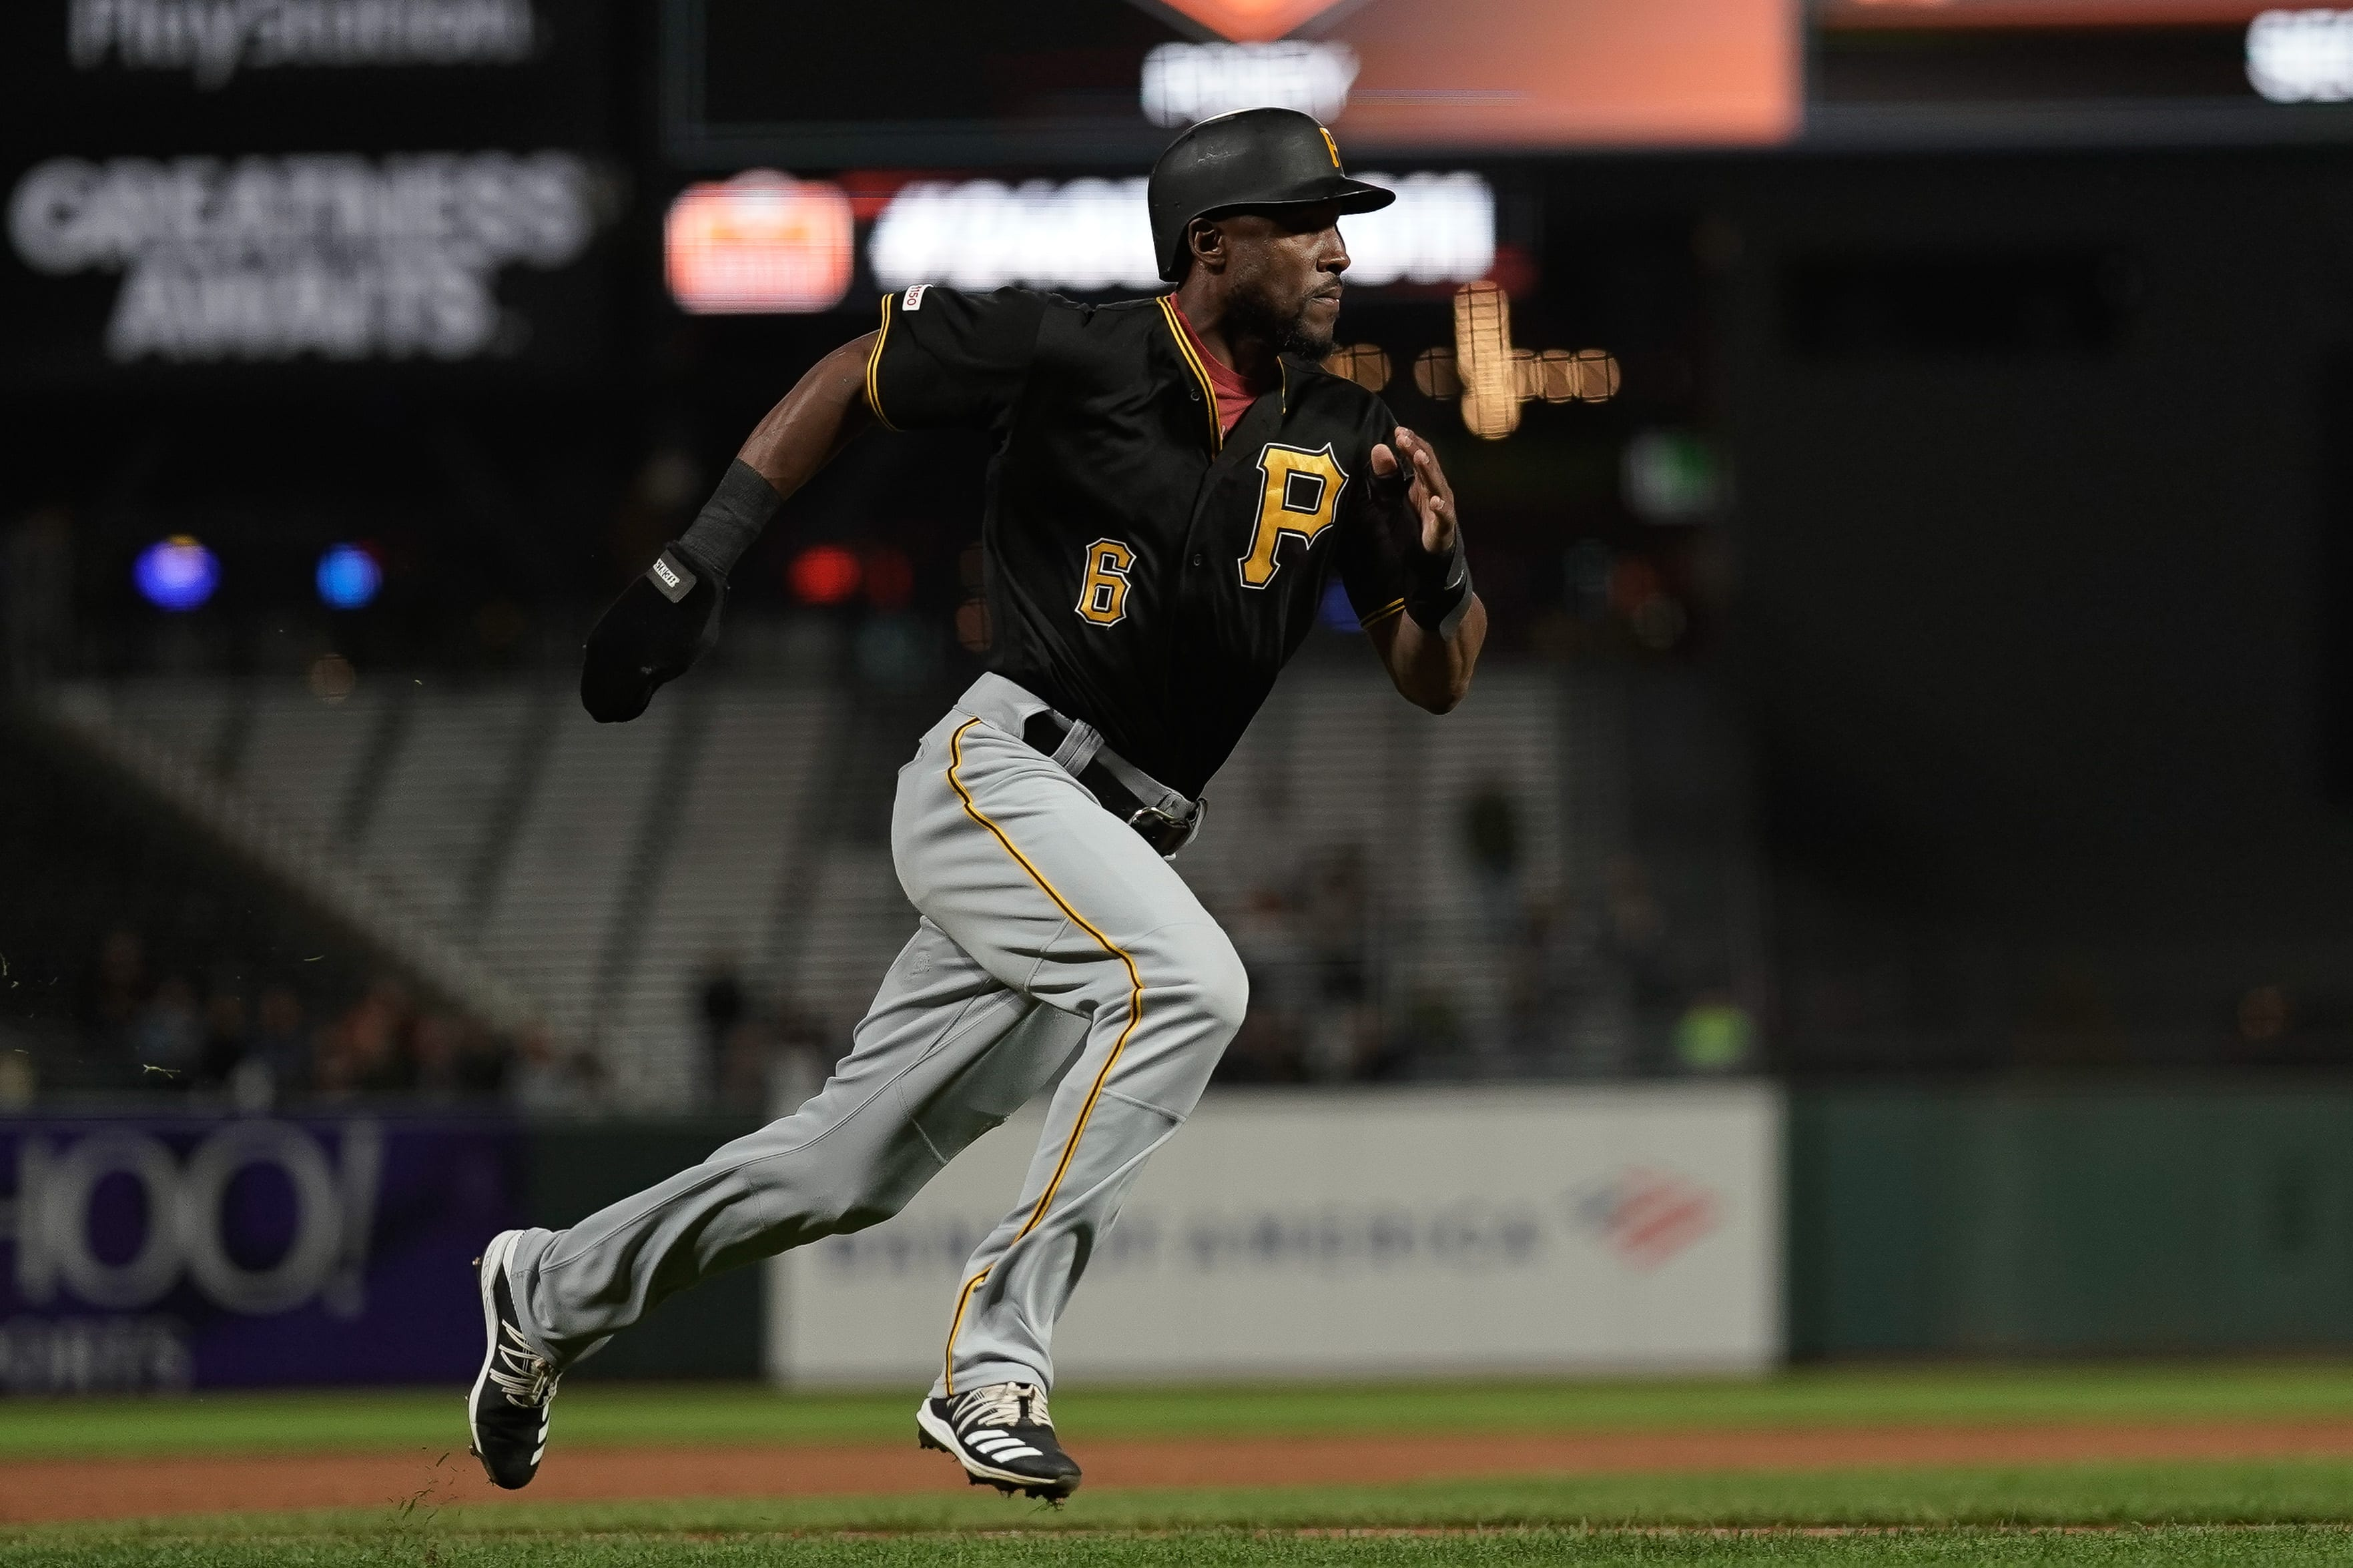 New York Mets interested in trading for Starling Marte.